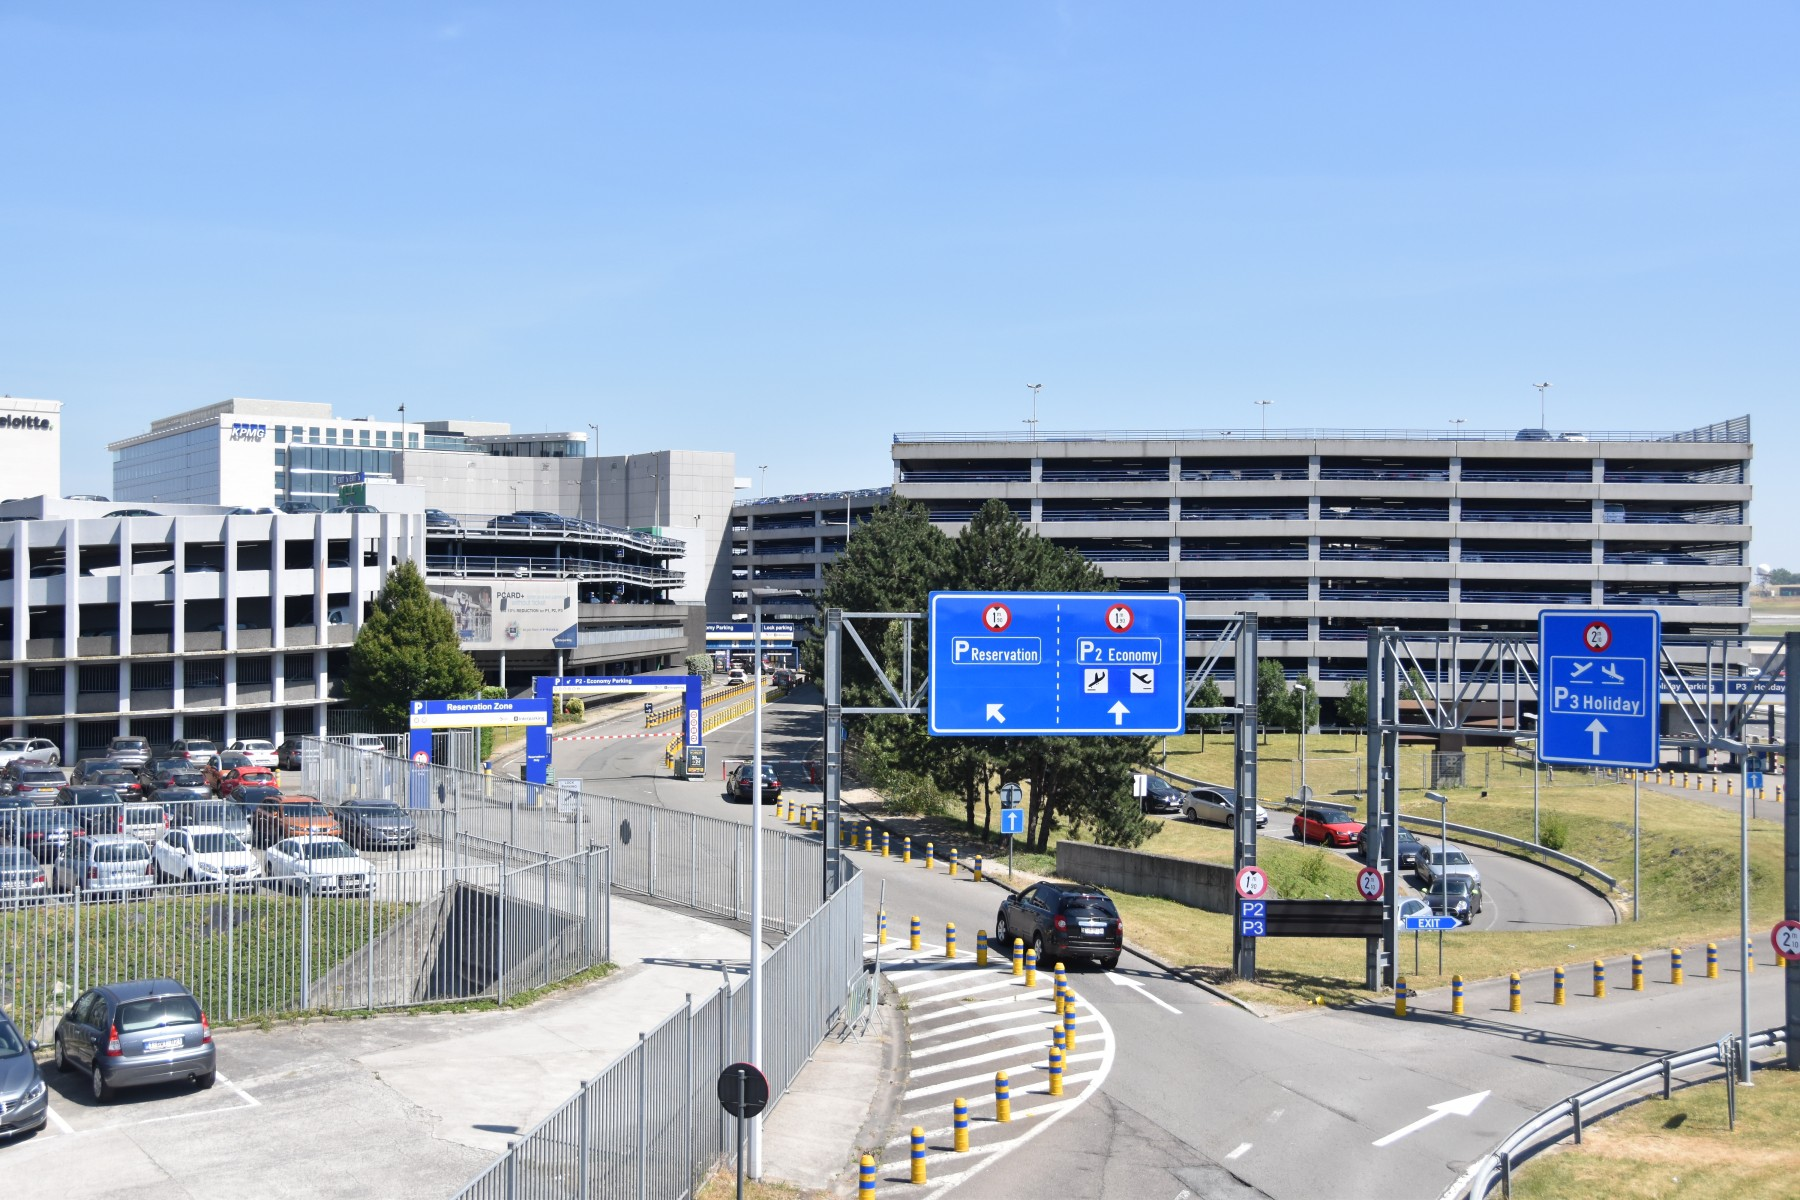 526bfee87a Stress-free passenger pick-up and drop-off at Brussels Airport